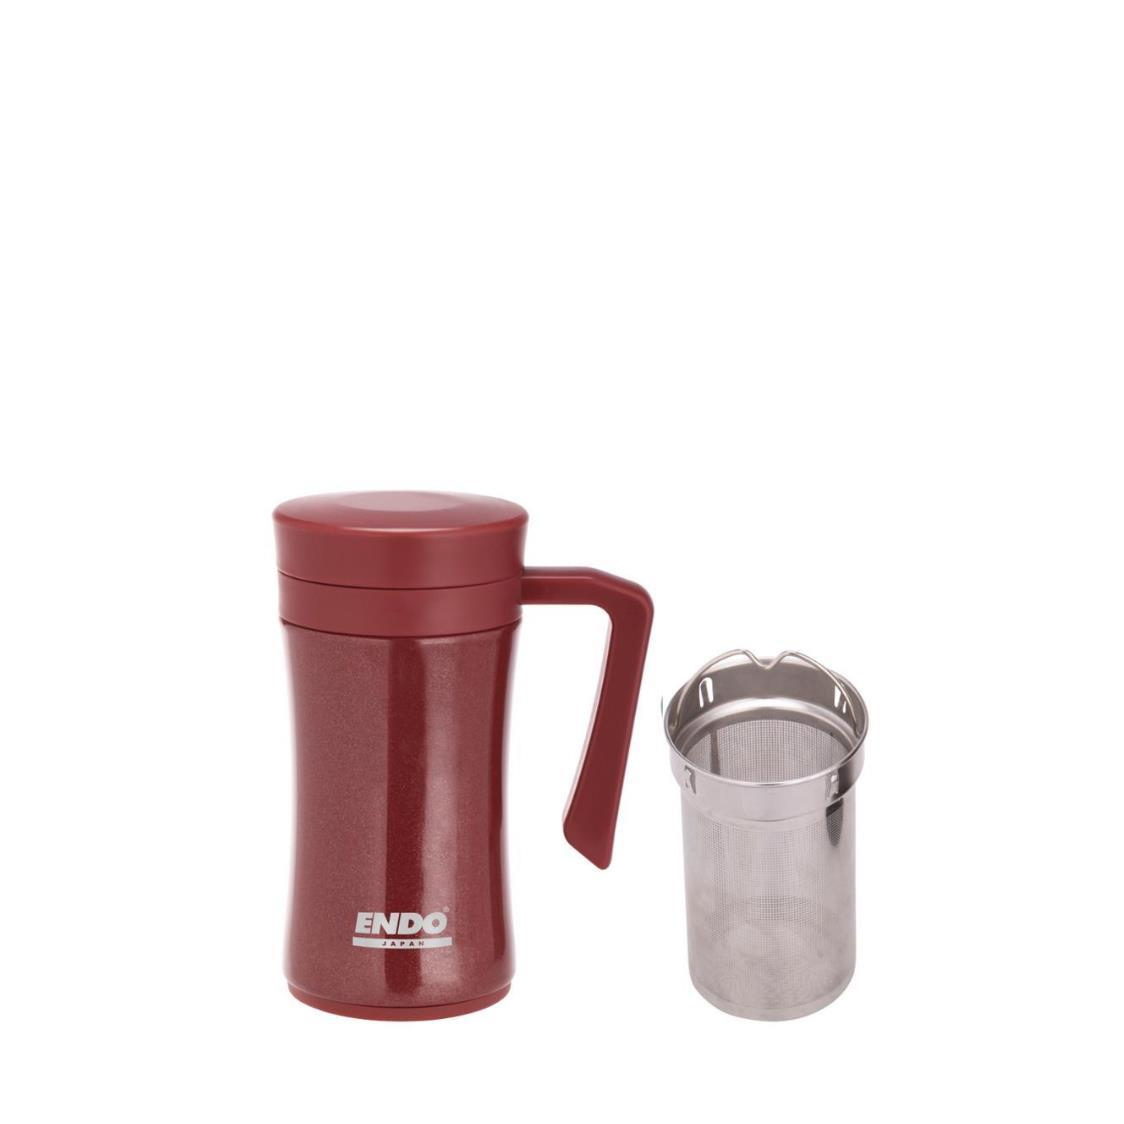 Endo 450ml Double Stainless Steel Desk Mug With Tea Strainer Burgundy CX-3001